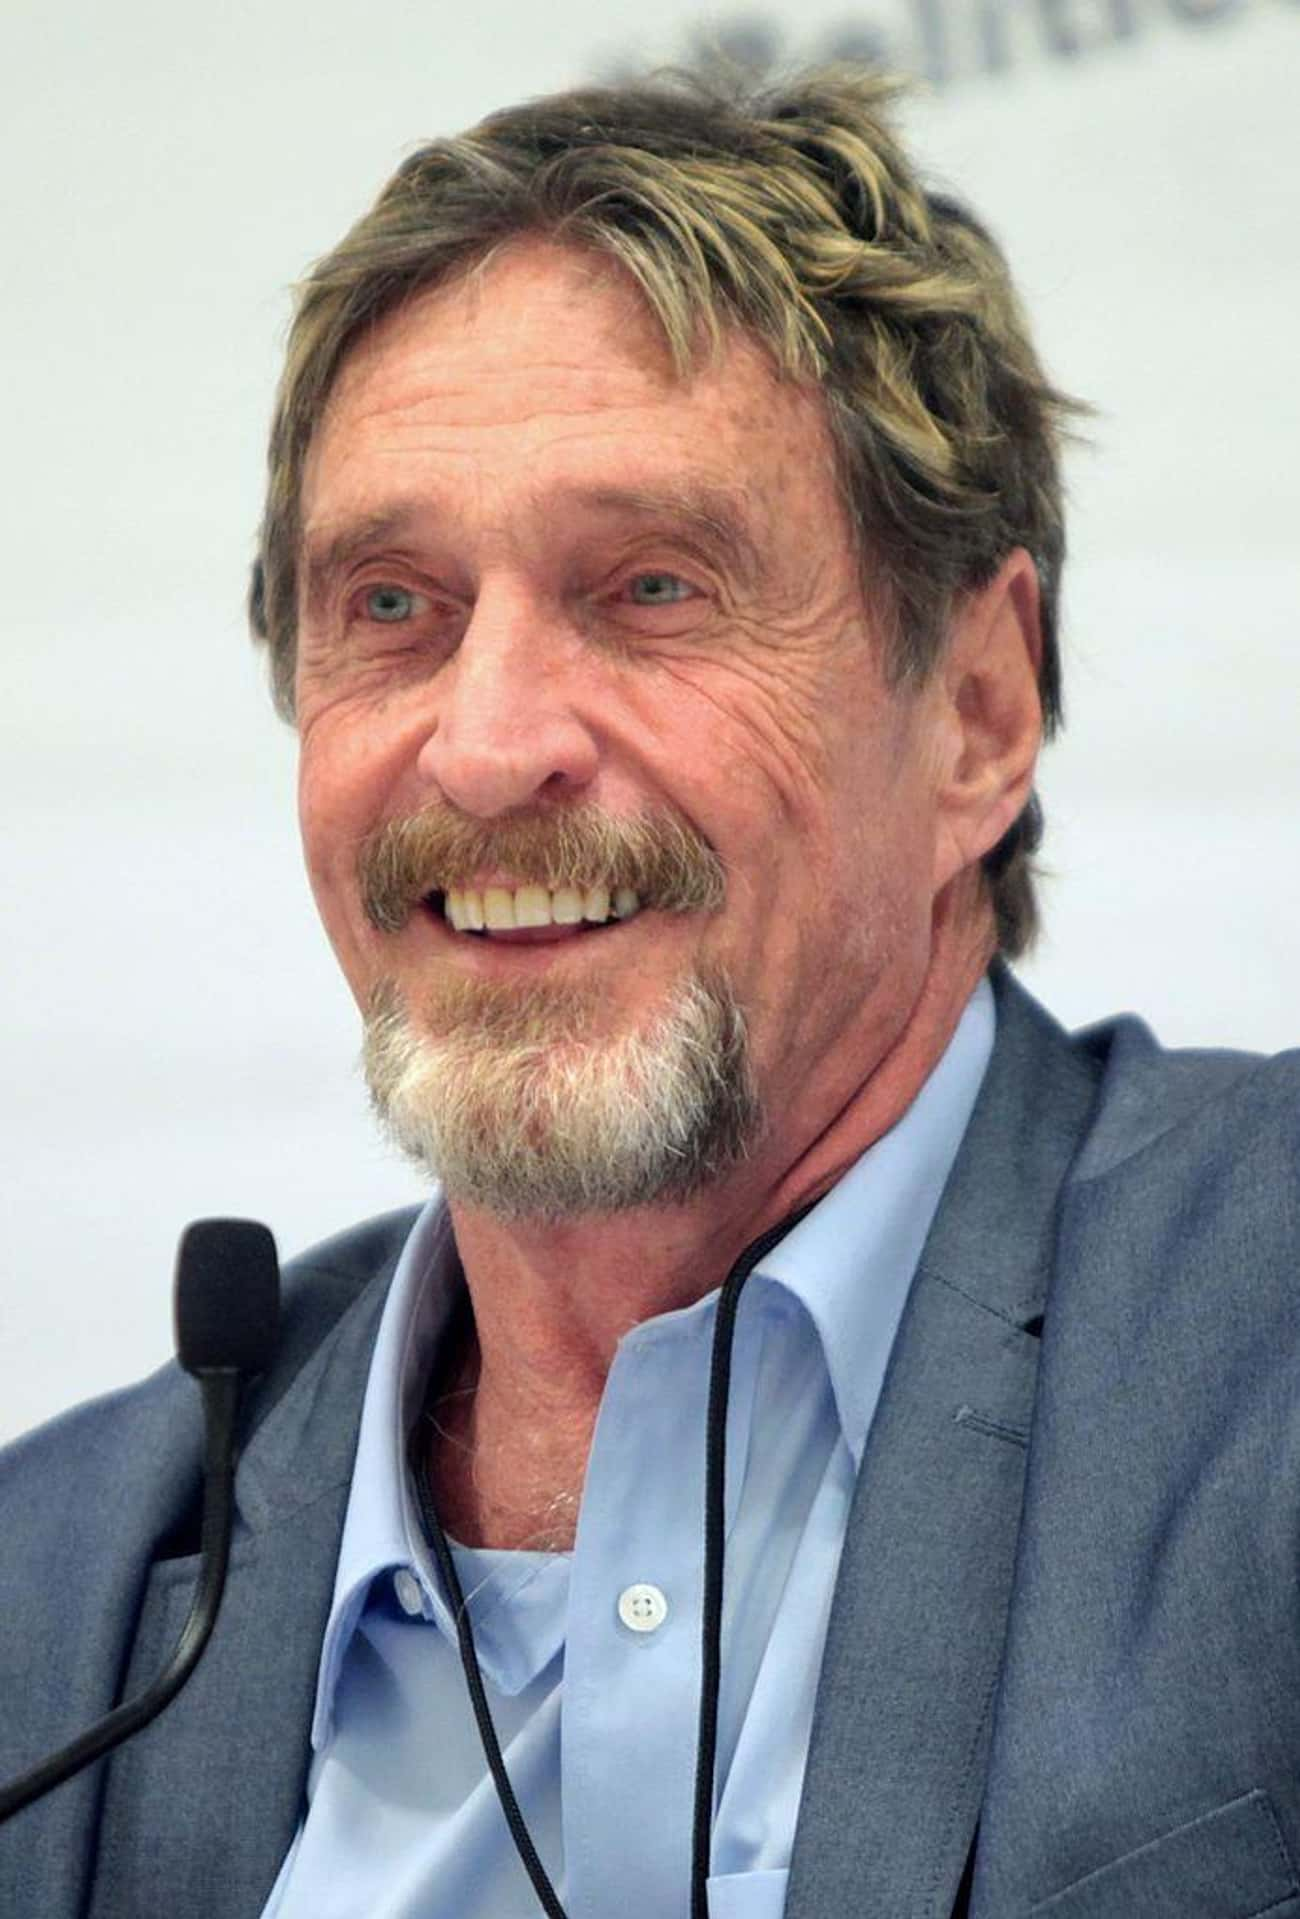 McAfee Anti-Virus Inventor Doesn't Use It